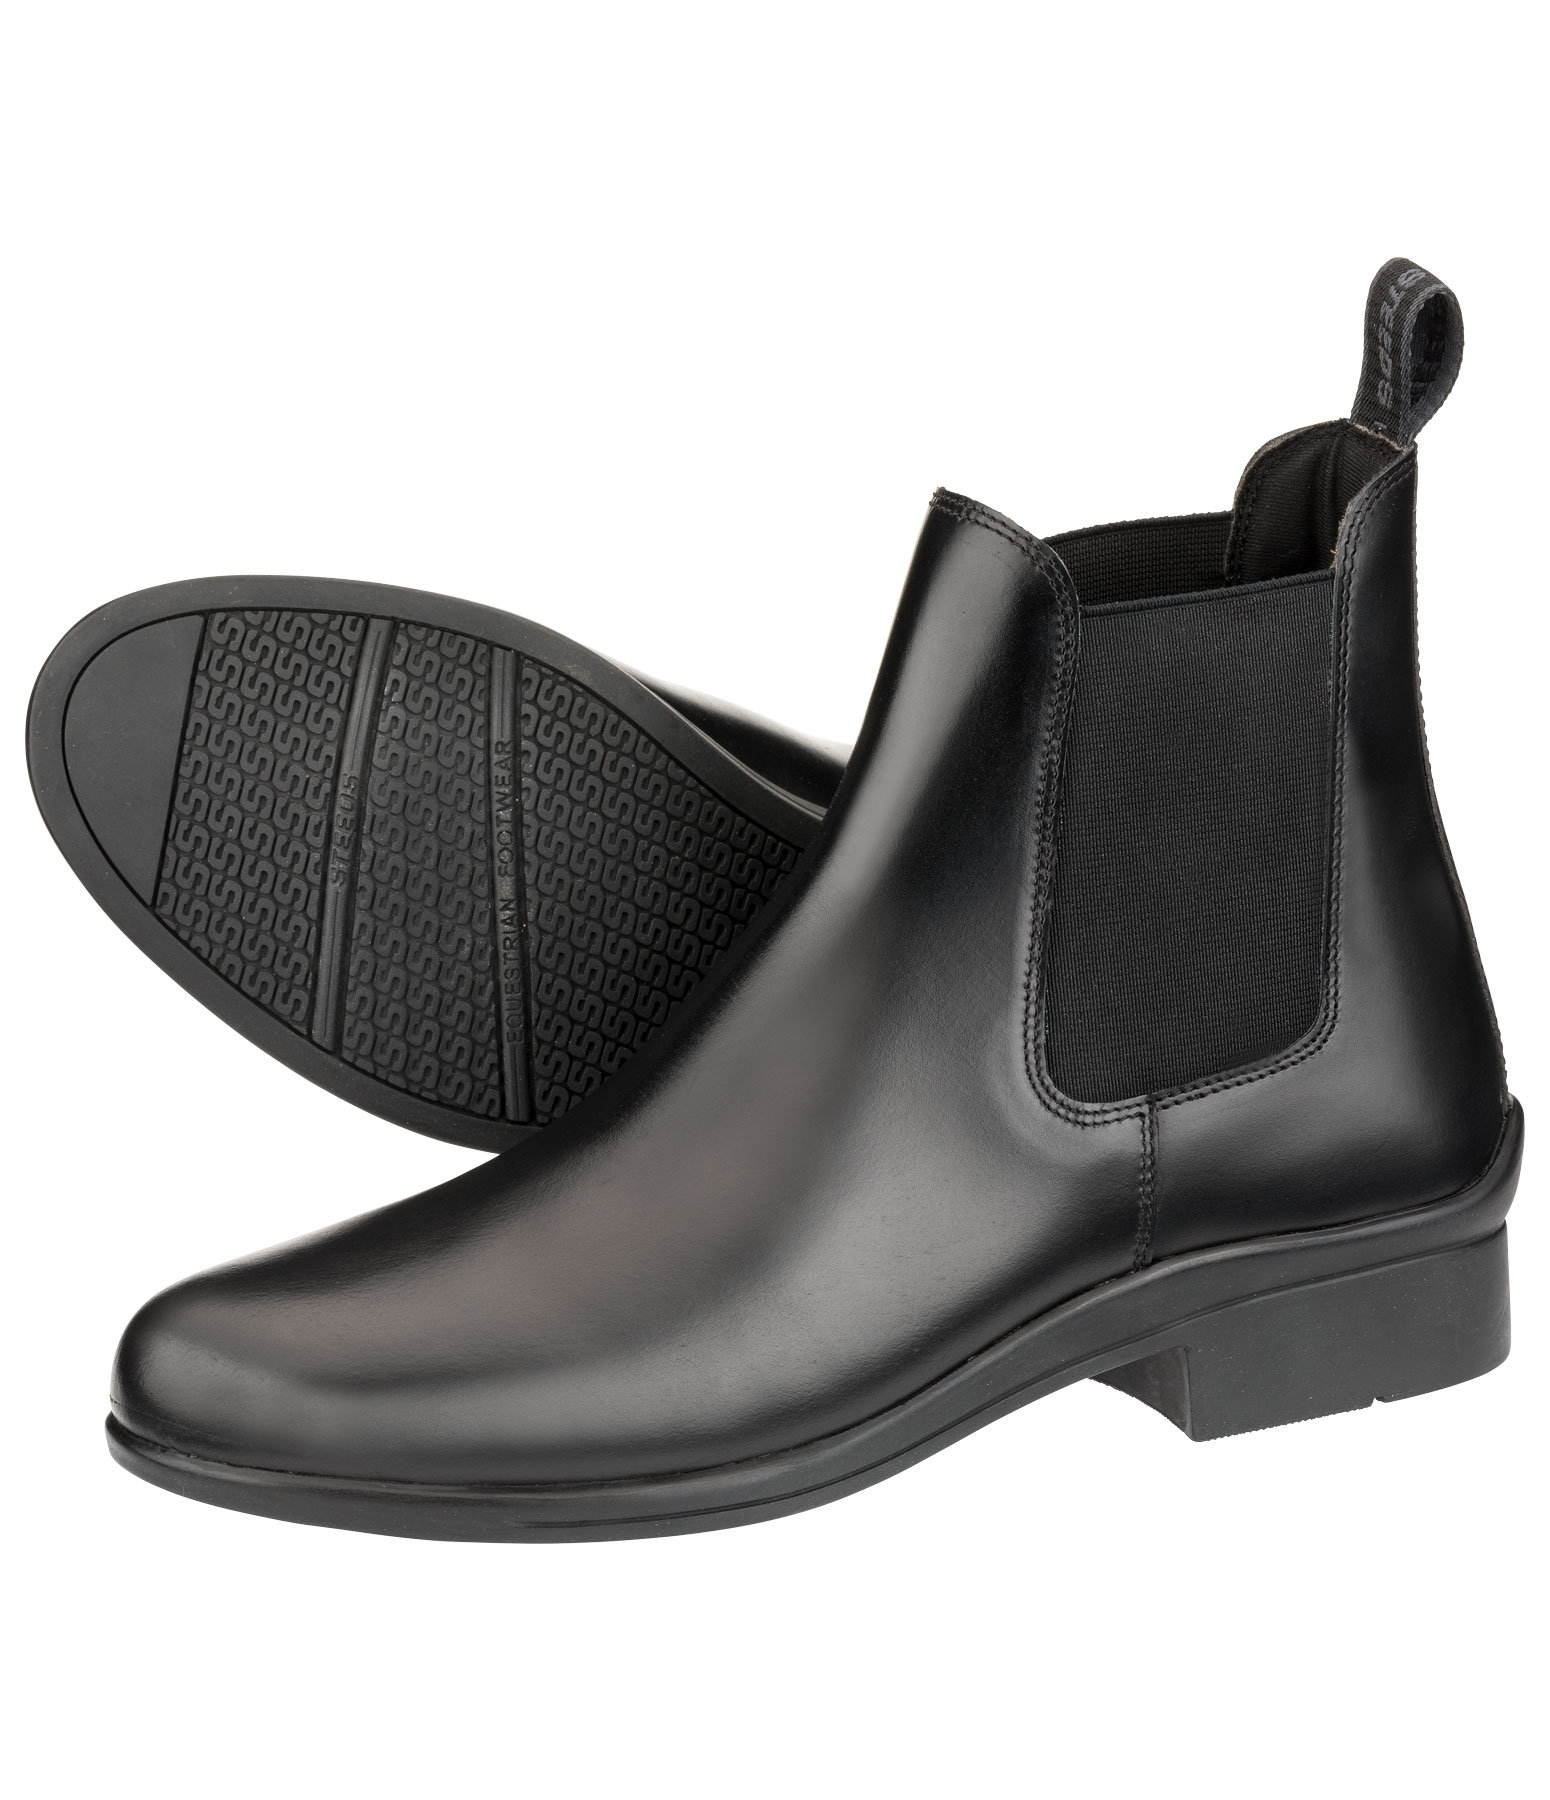 Jodhpur Boots Athletic III